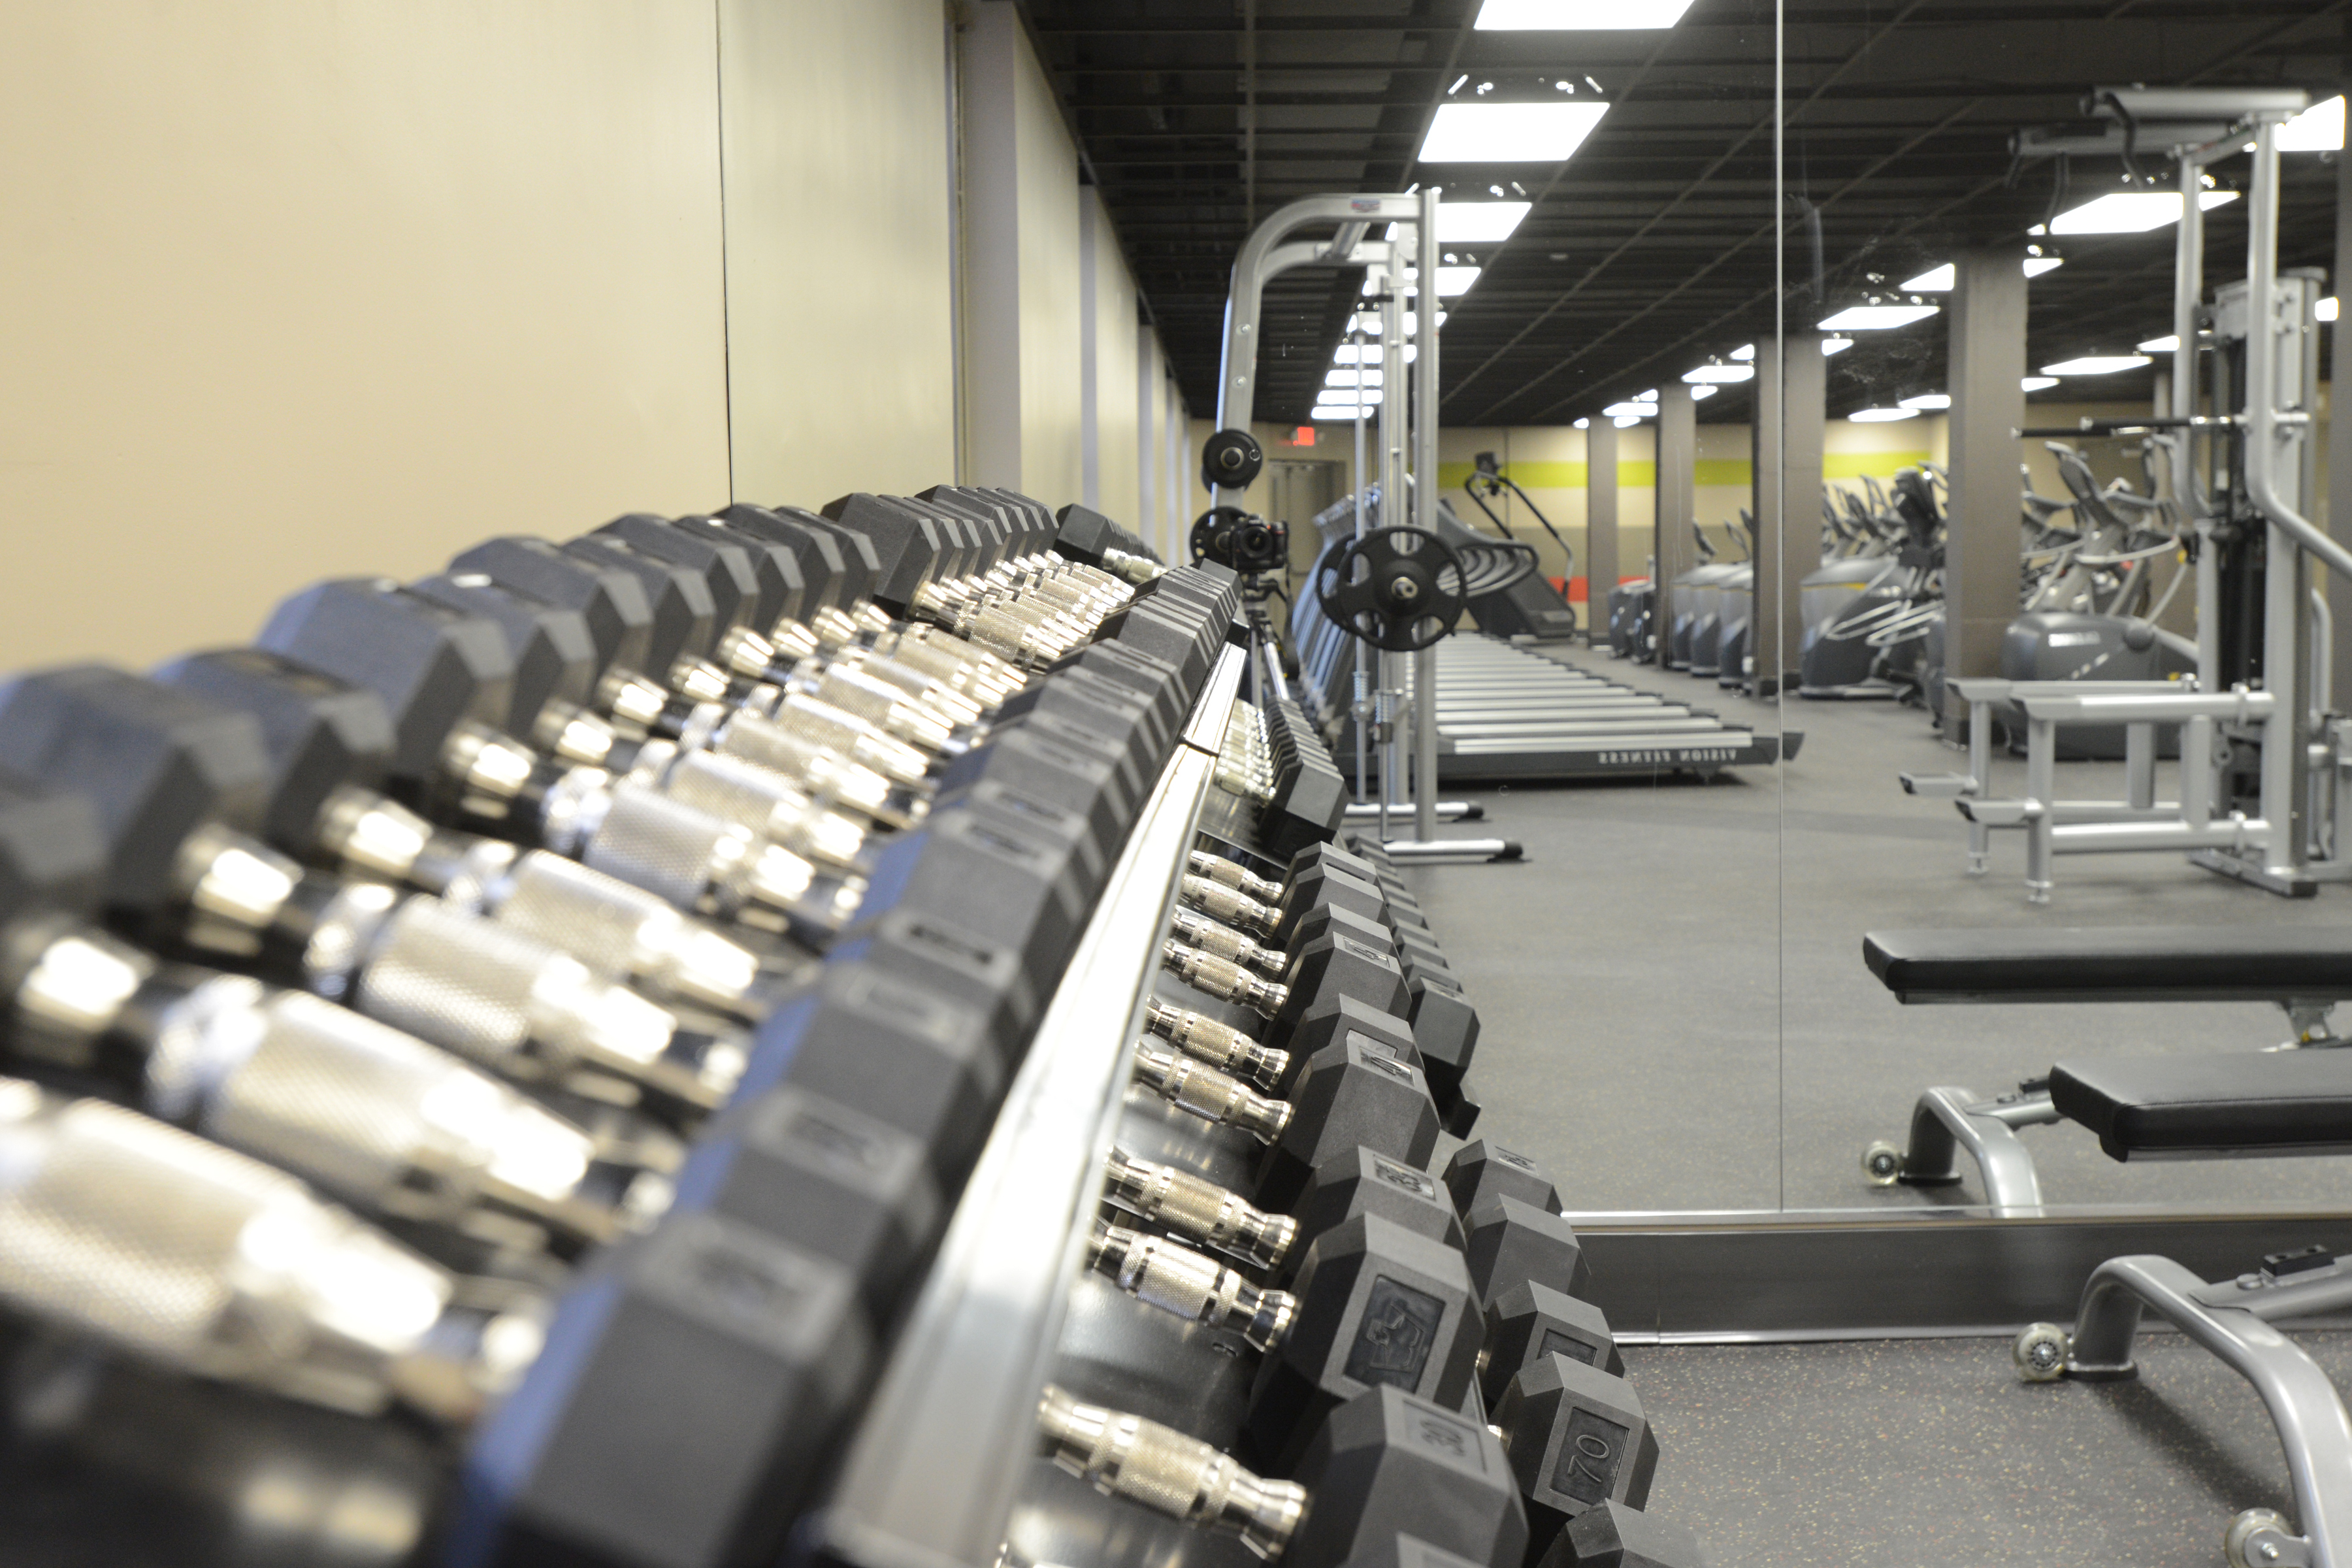 Rack of Weights in Fitness Center